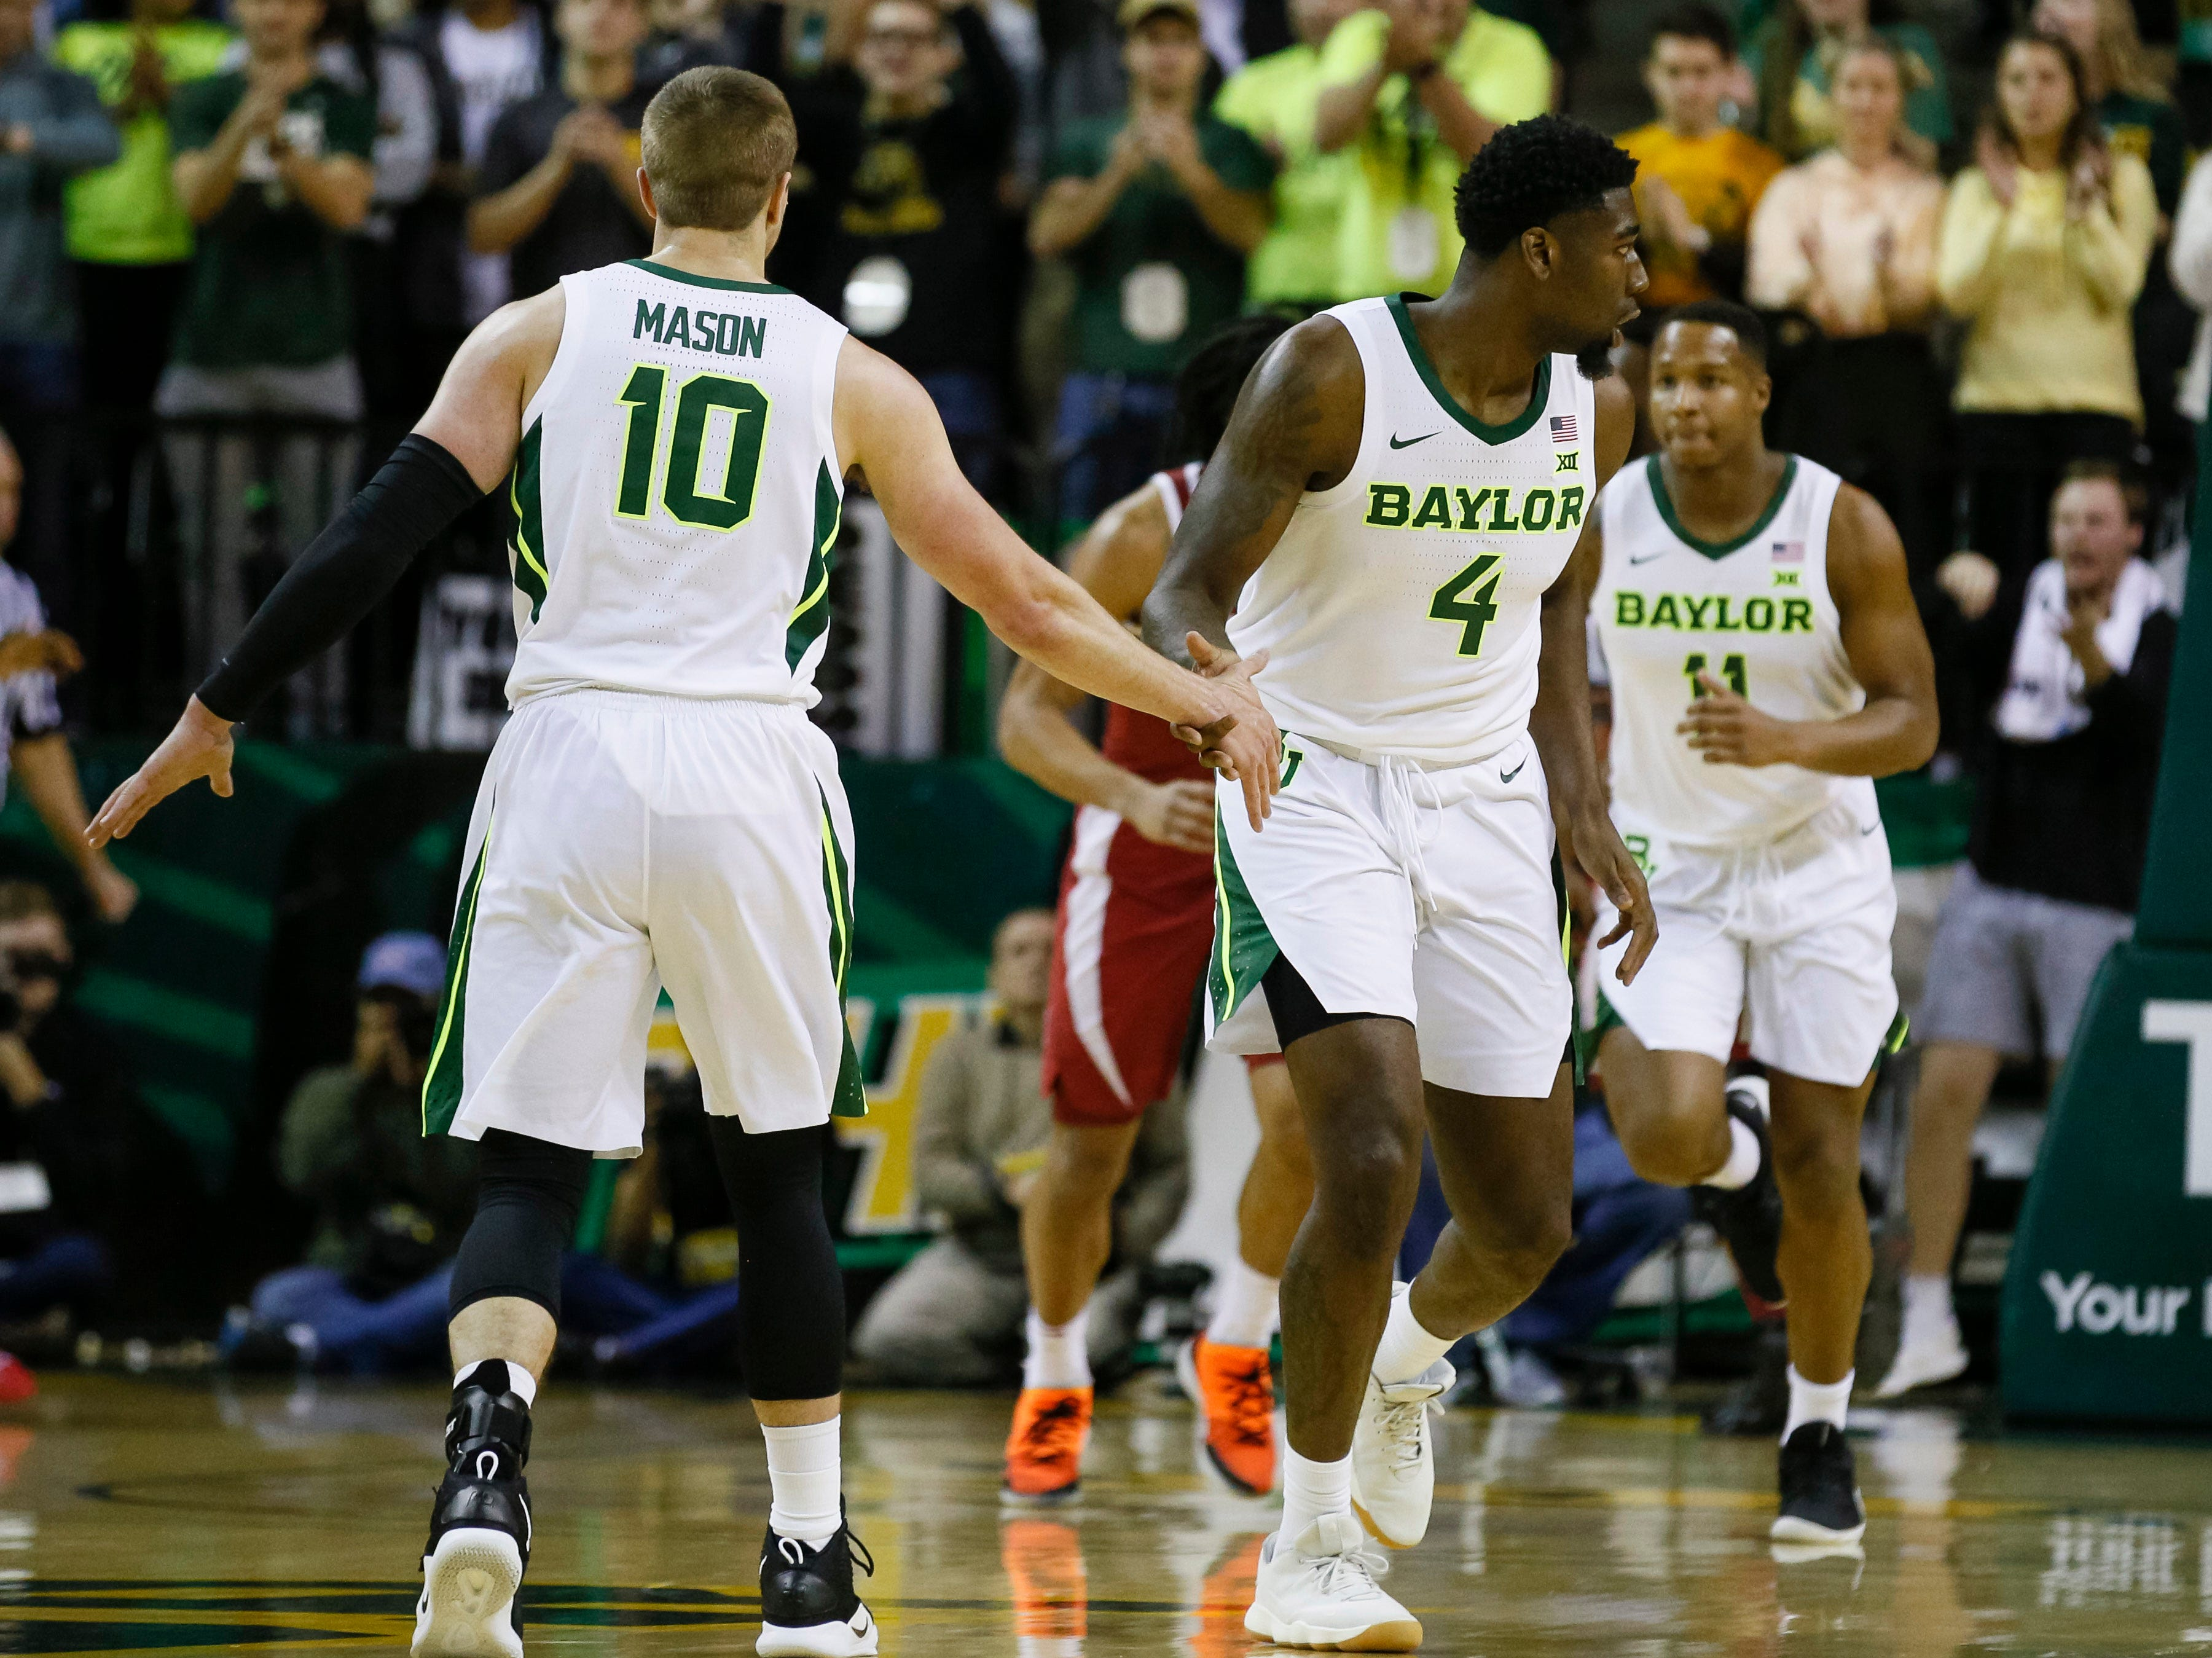 Jan 26, 2019; Waco, TX, USA; Baylor Bears guard Mario Kegler (4) celebrates with guard Makai Mason (10) after scoring against the Alabama Crimson Tide during the first half at Ferrell Center. Mandatory Credit: Ray Carlin-USA TODAY Sports